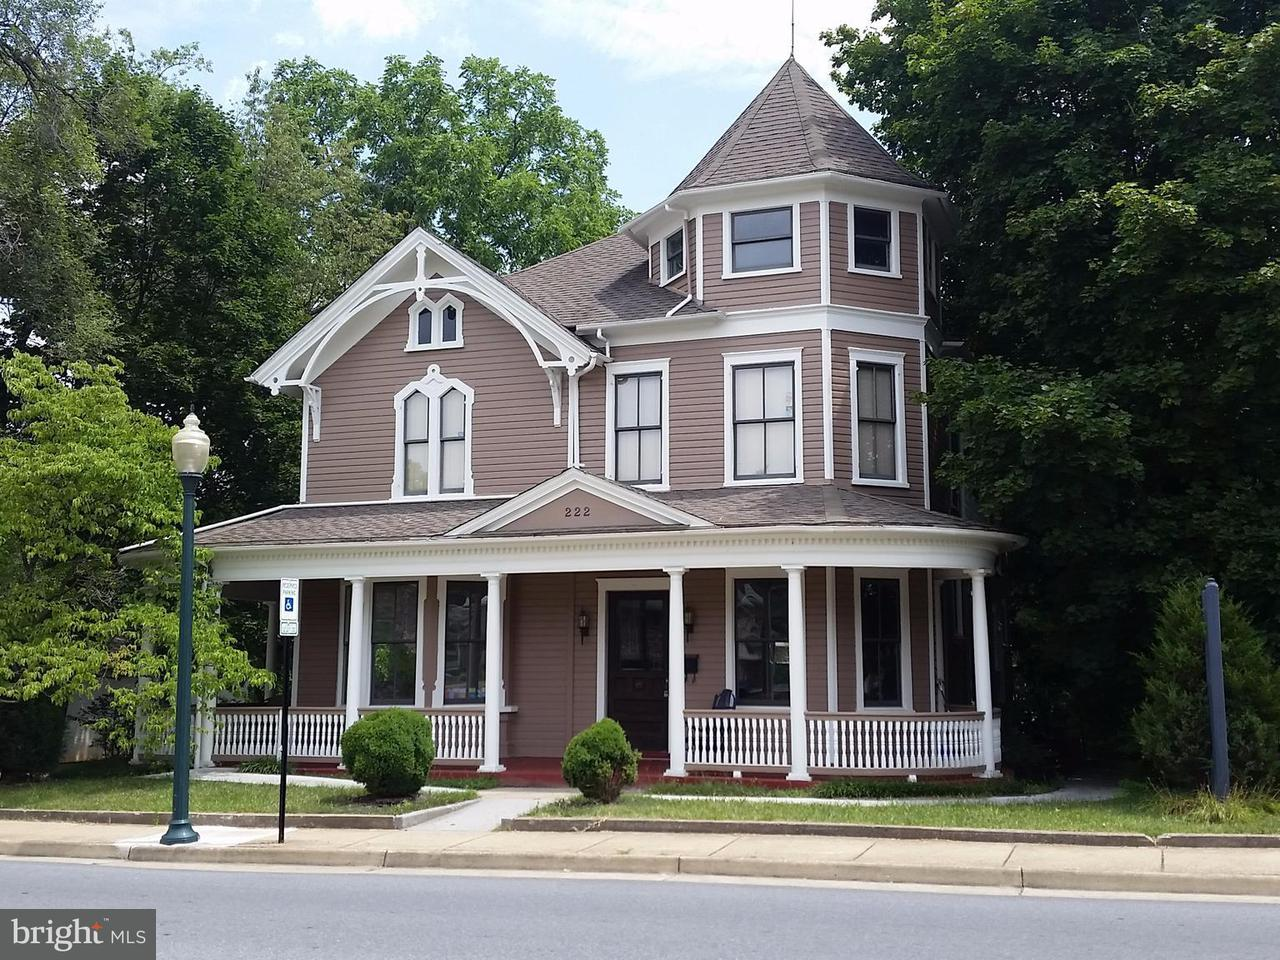 Other Residential for Rent at 222 N Royal Ave Front Royal, Virginia 22630 United States